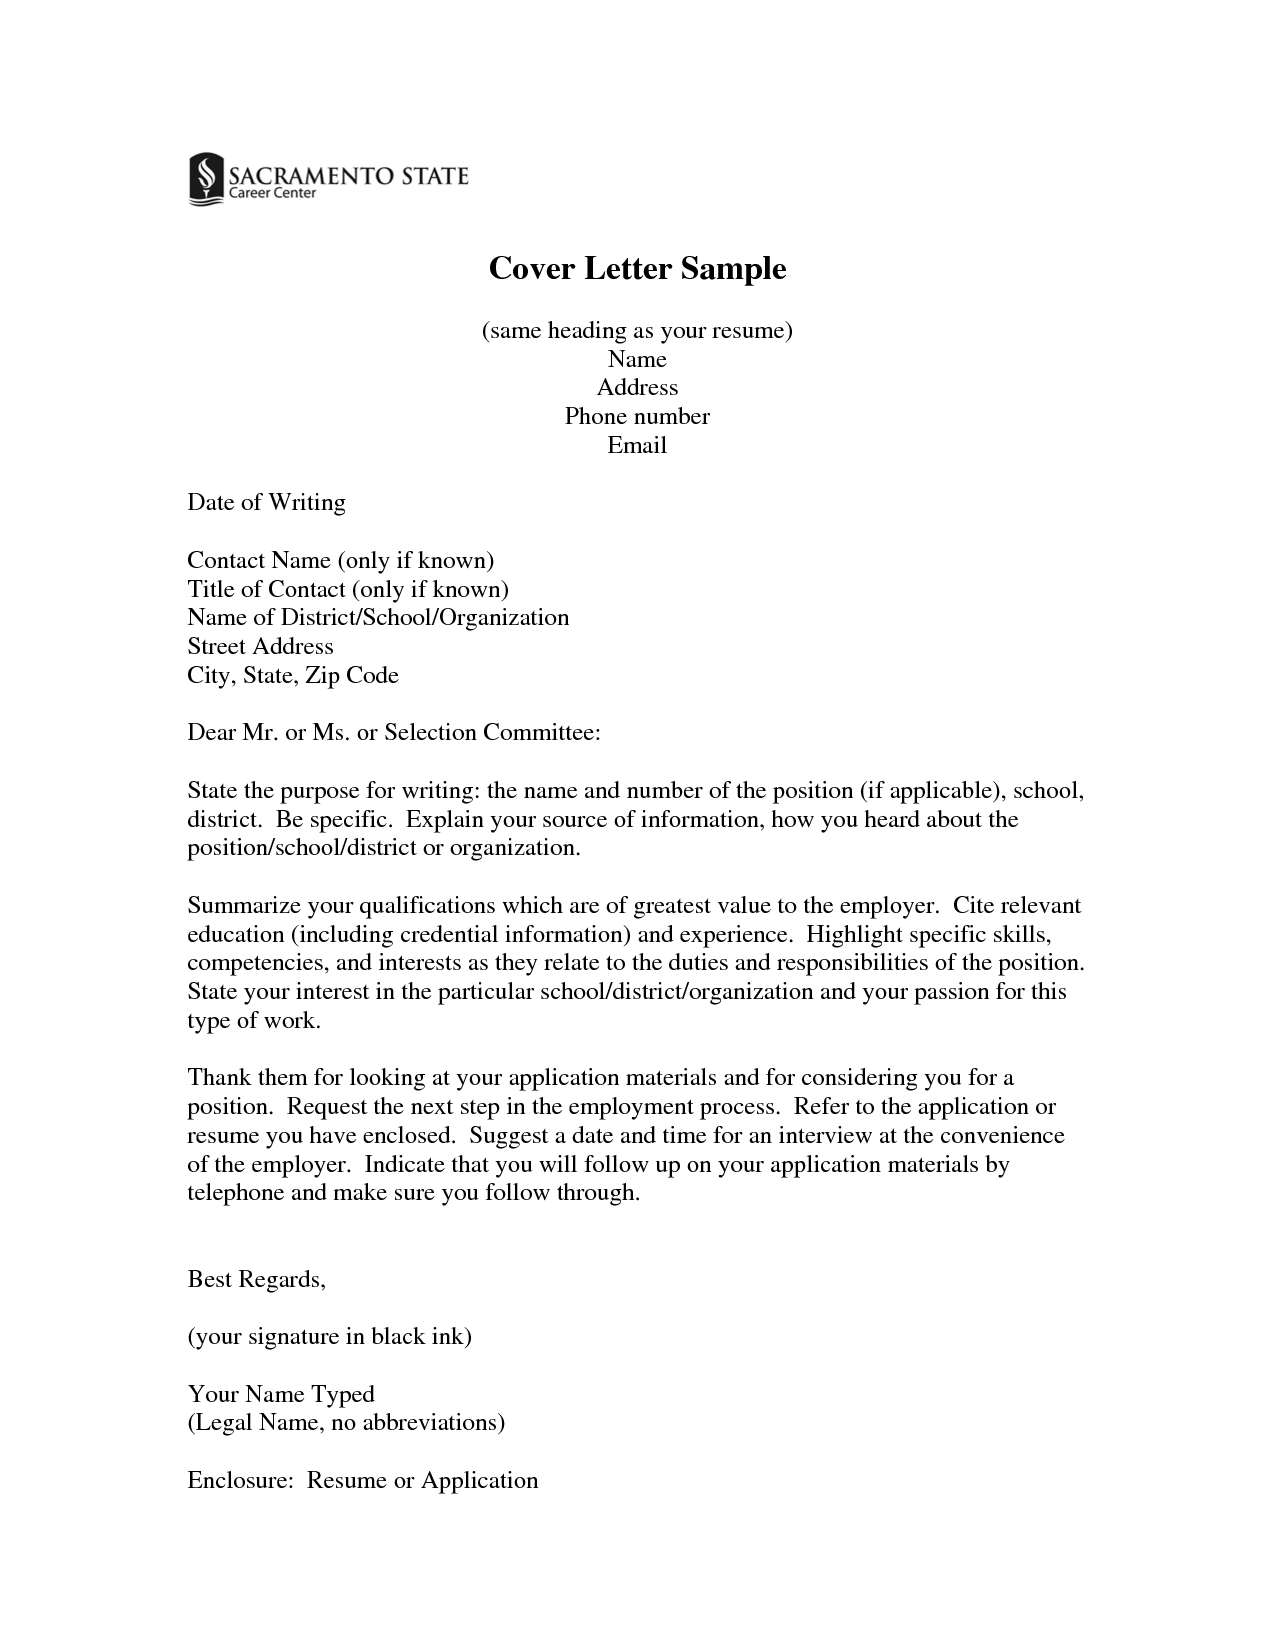 cover letter no address of employer - same cover letters for resume cover letter sample same